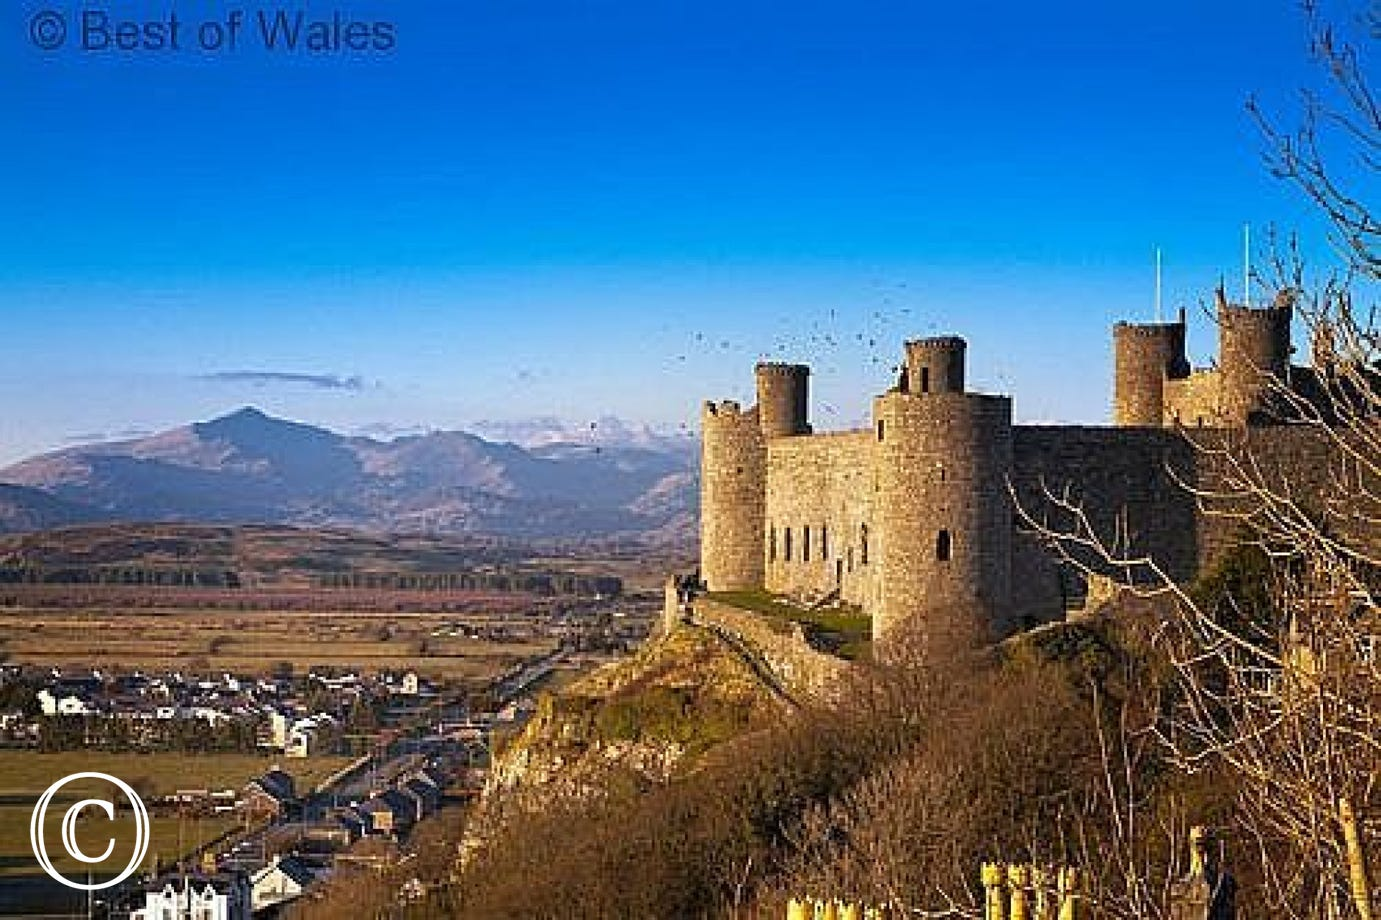 Harlech Castle (15 miles) is a World Heritage Site